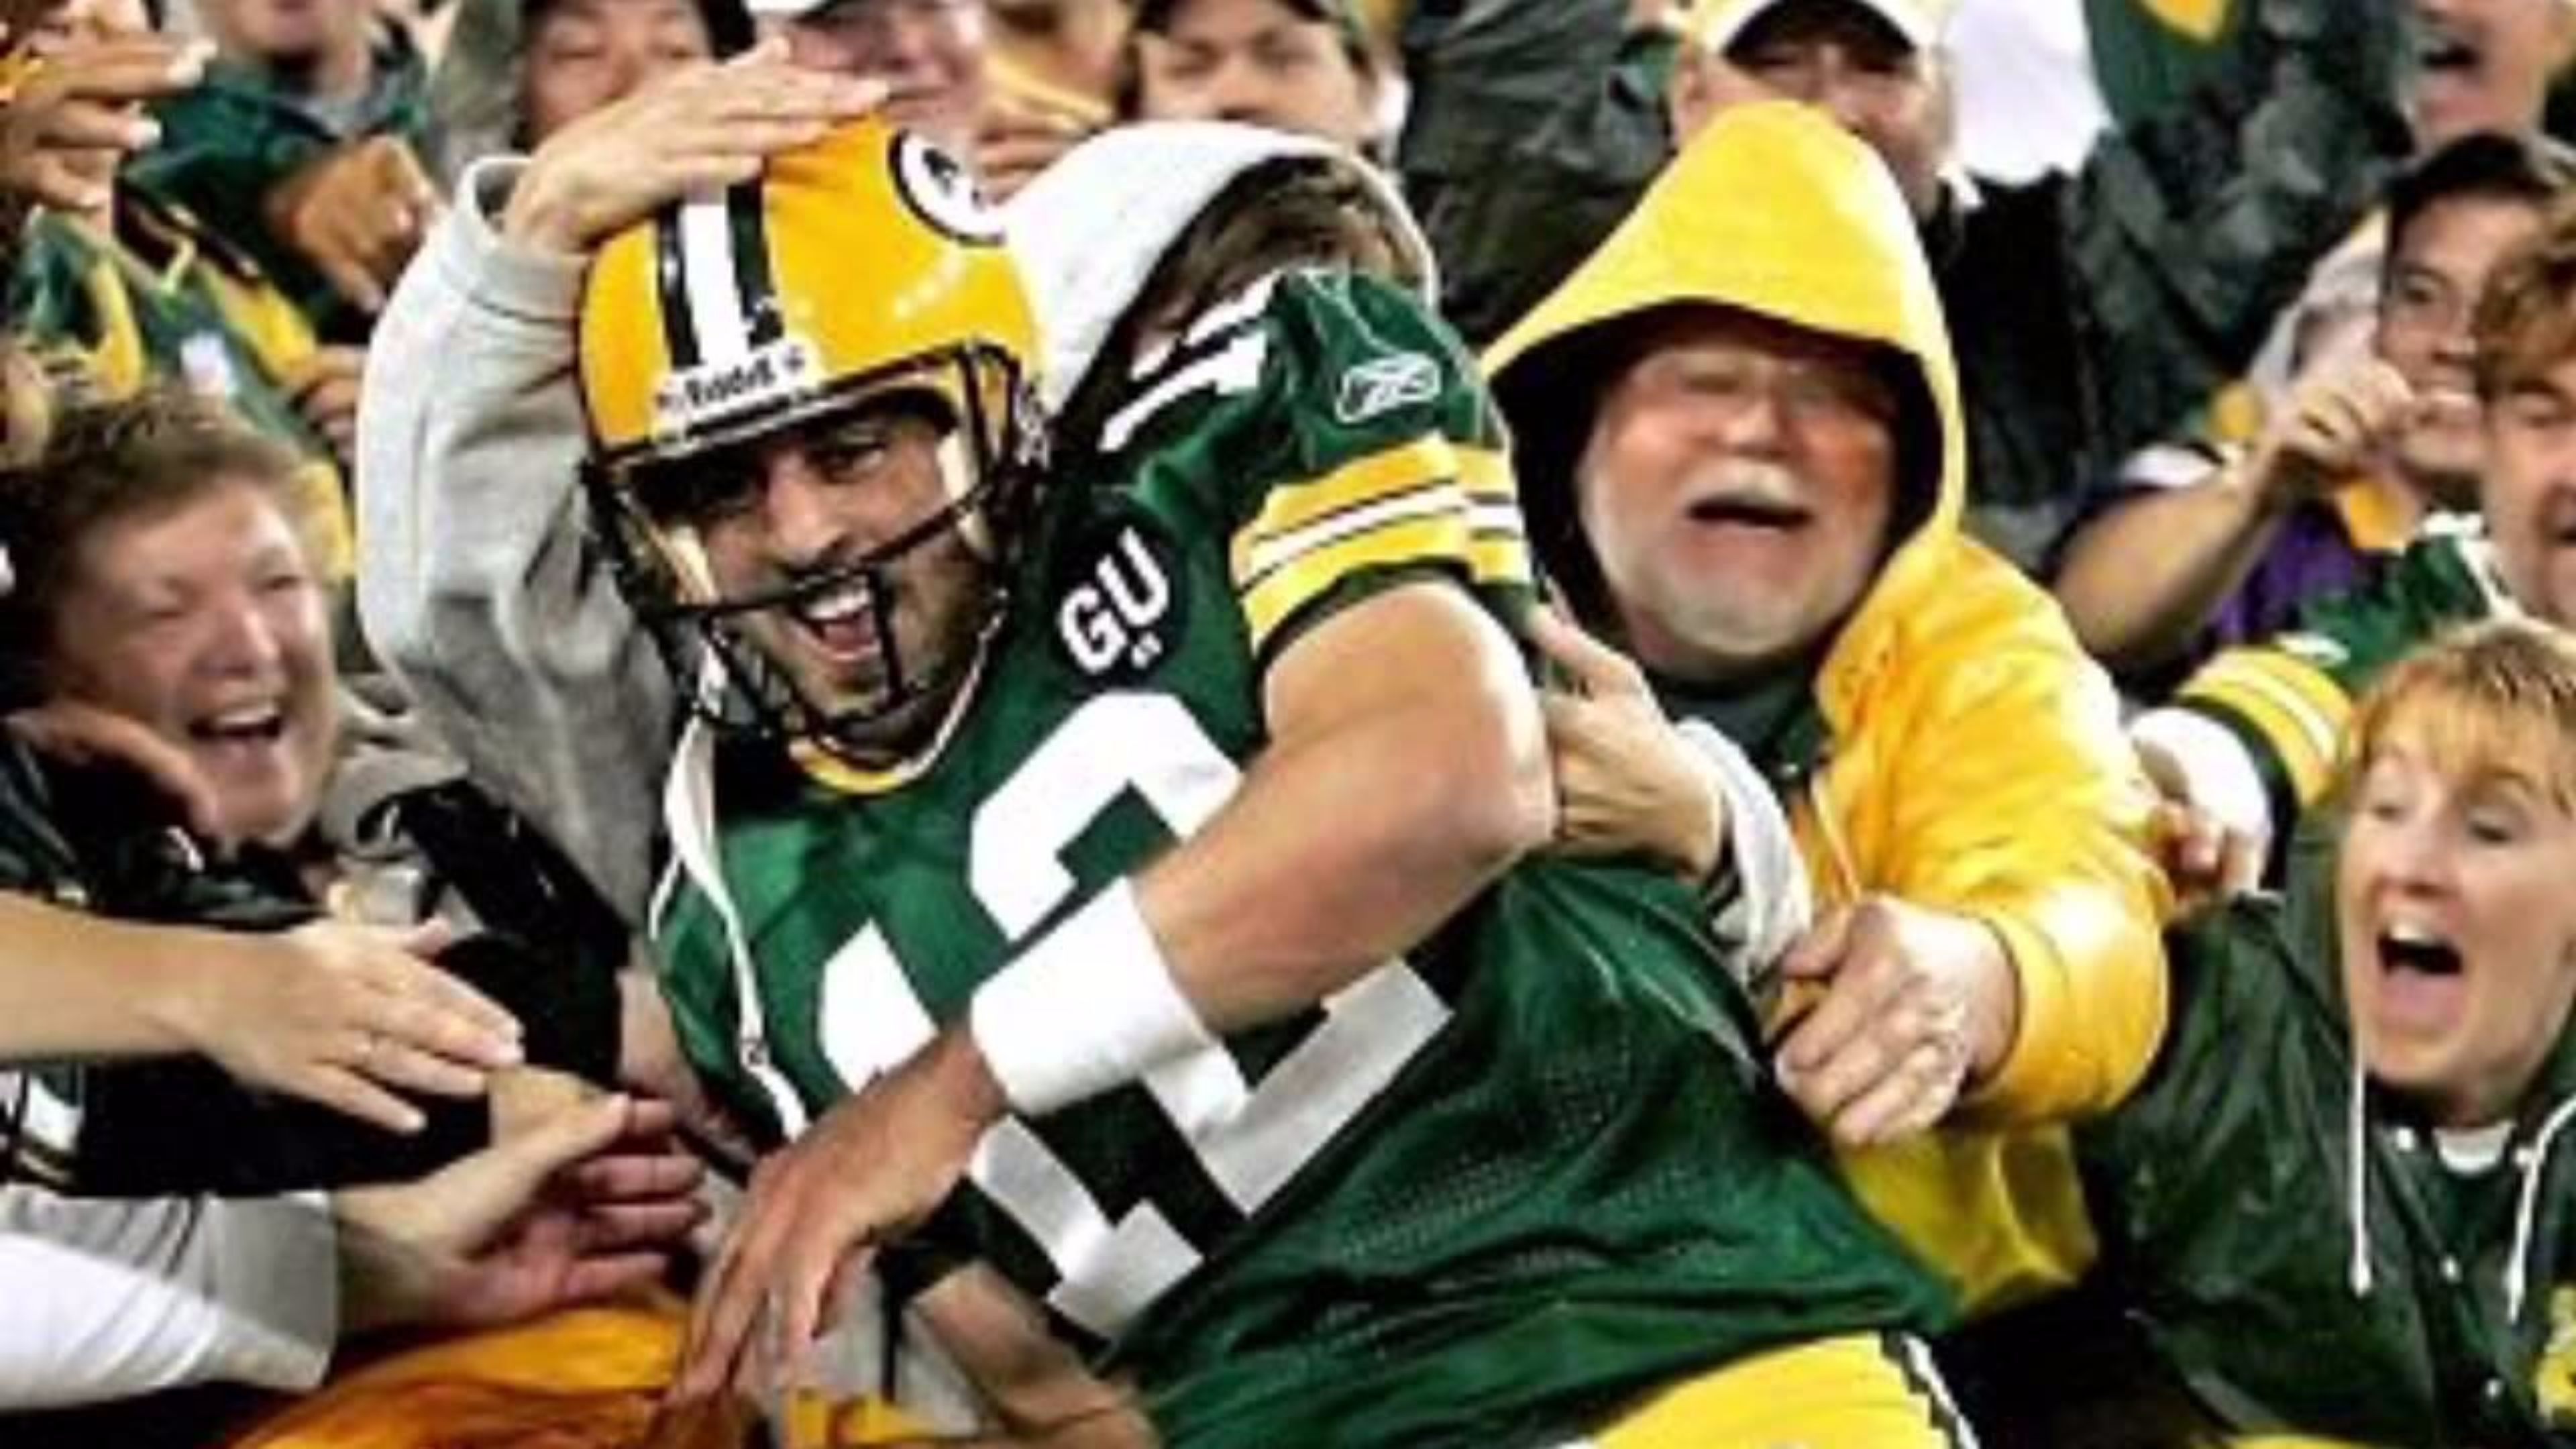 Pin By Shauna Lautenschlager On Green Bay Packers Green Bay Packers Green Bay Packers Fans Green Bay